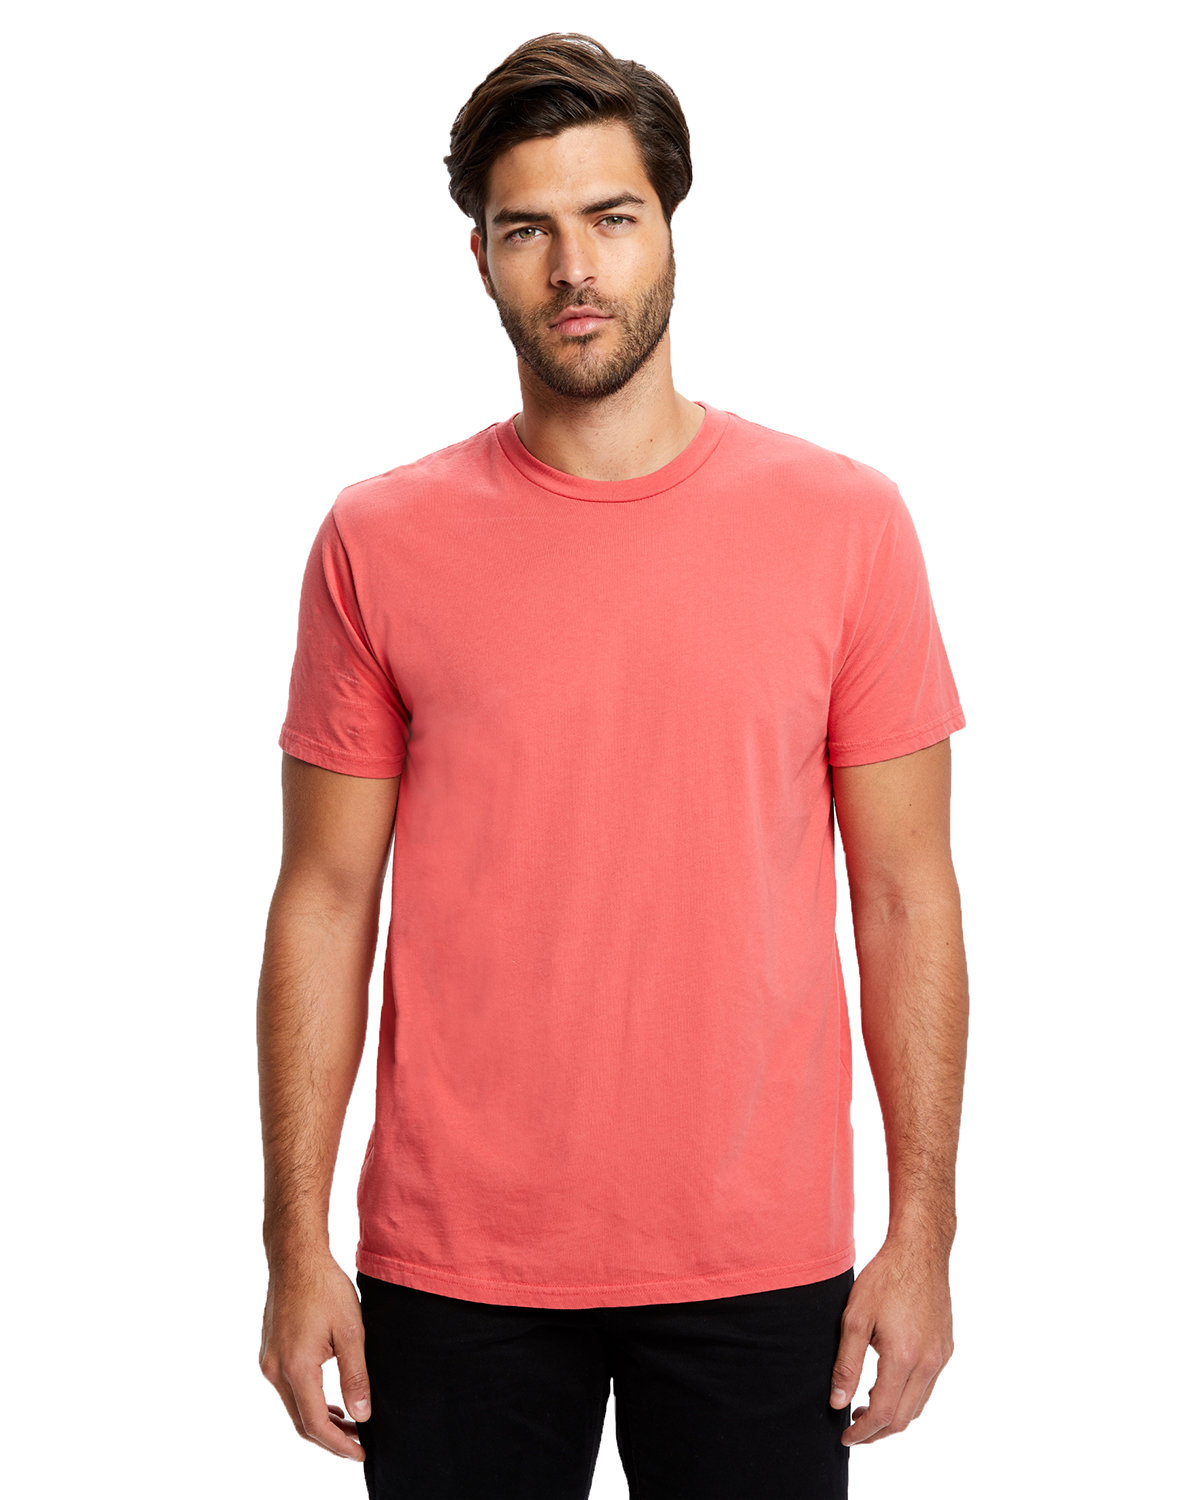 US Blanks Men's Made in USA Short Sleeve Crew T-Shirt CORAL